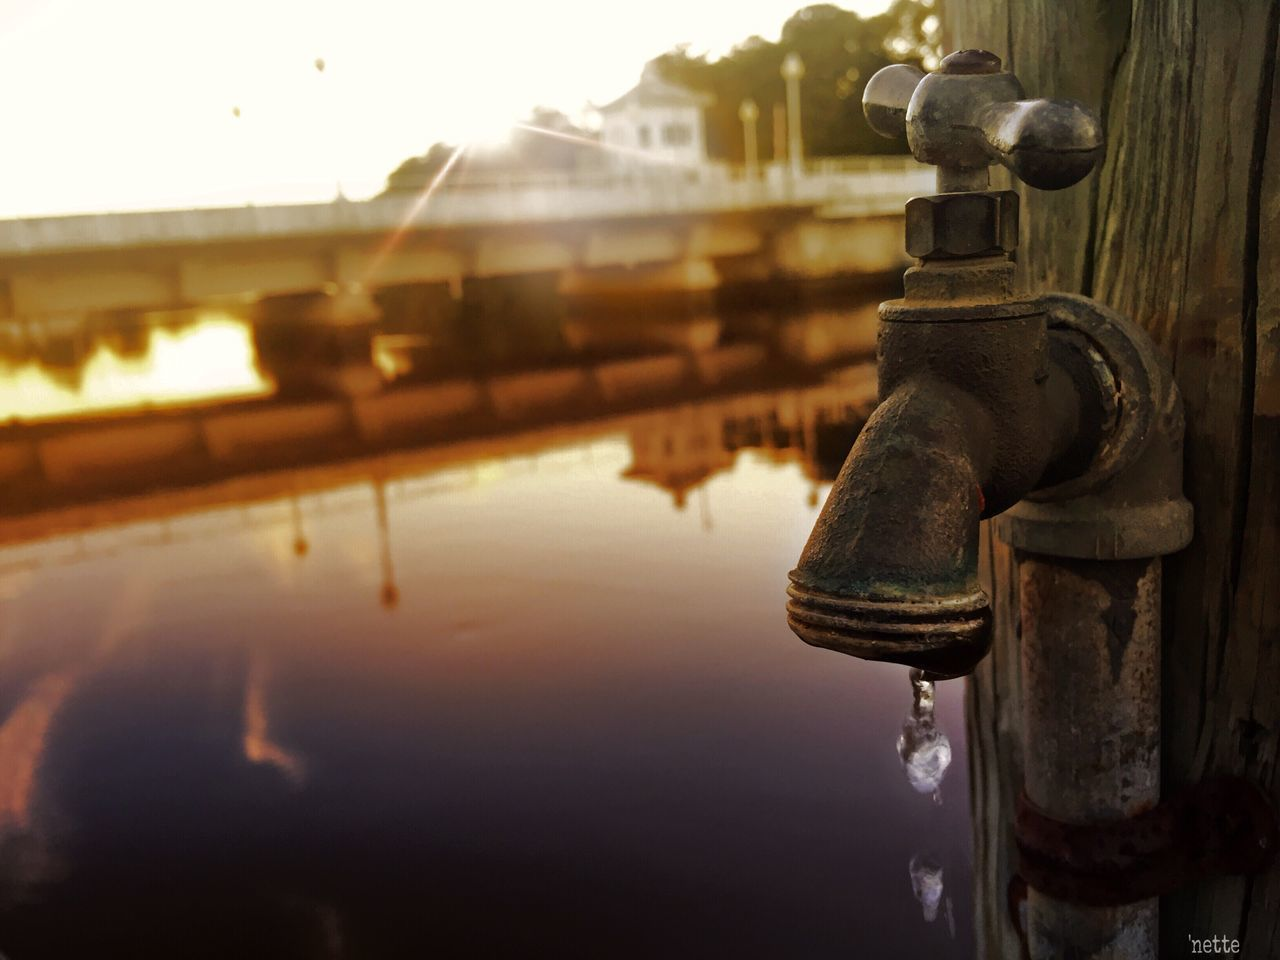 water, drop, outdoors, no people, close-up, focus on foreground, built structure, building exterior, architecture, day, sky, dripping, nature